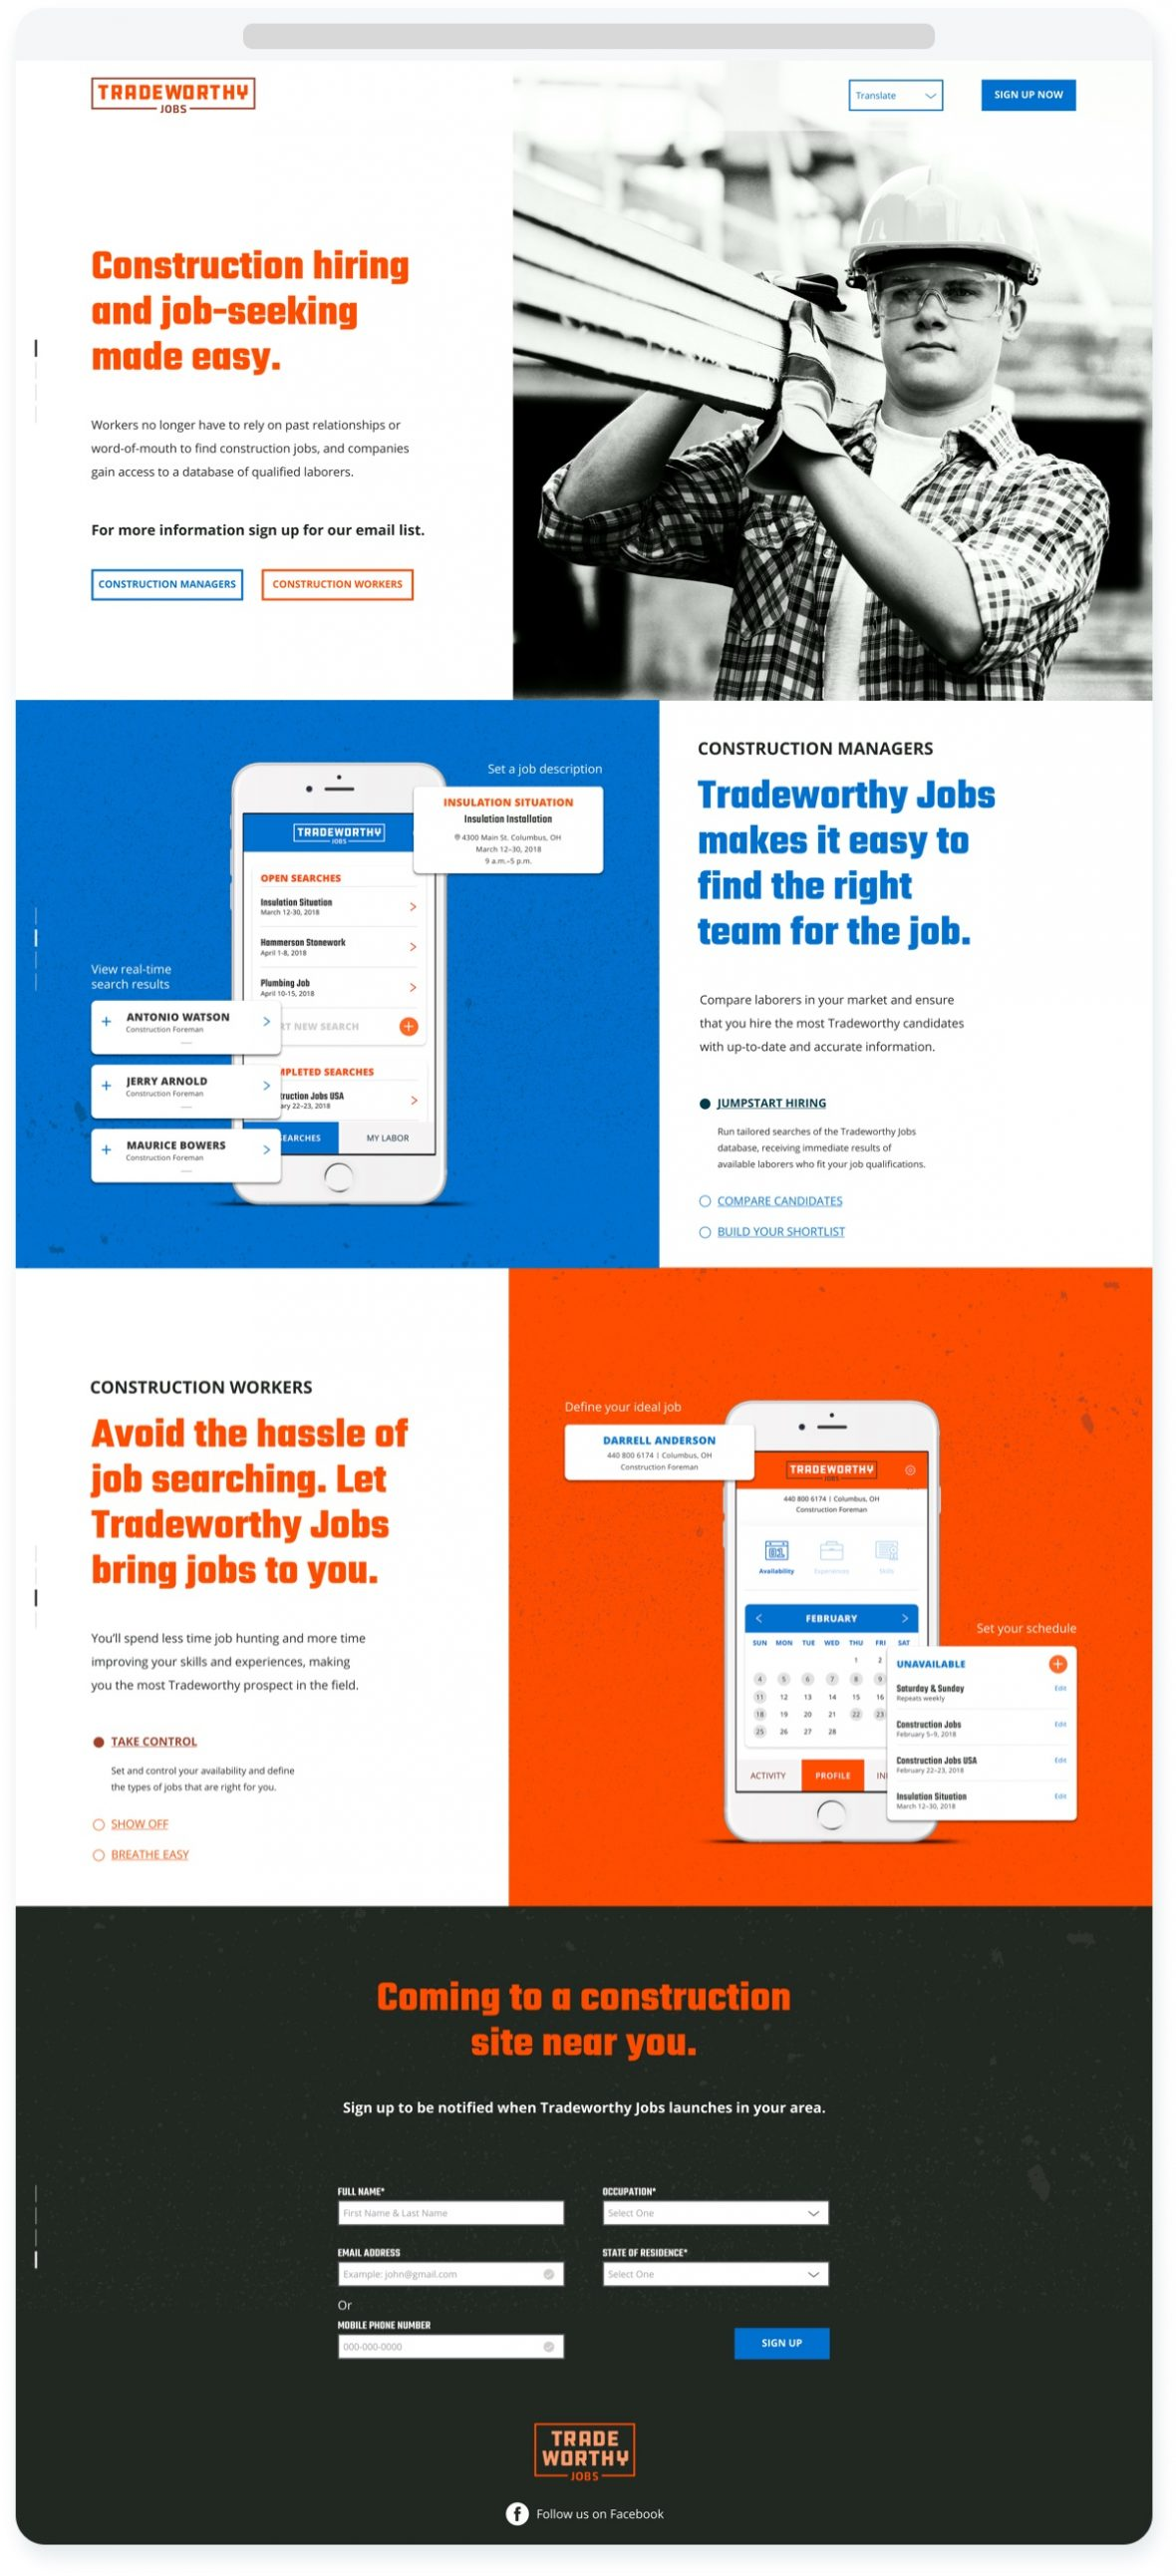 The Tradeworthy Jobs landing page.